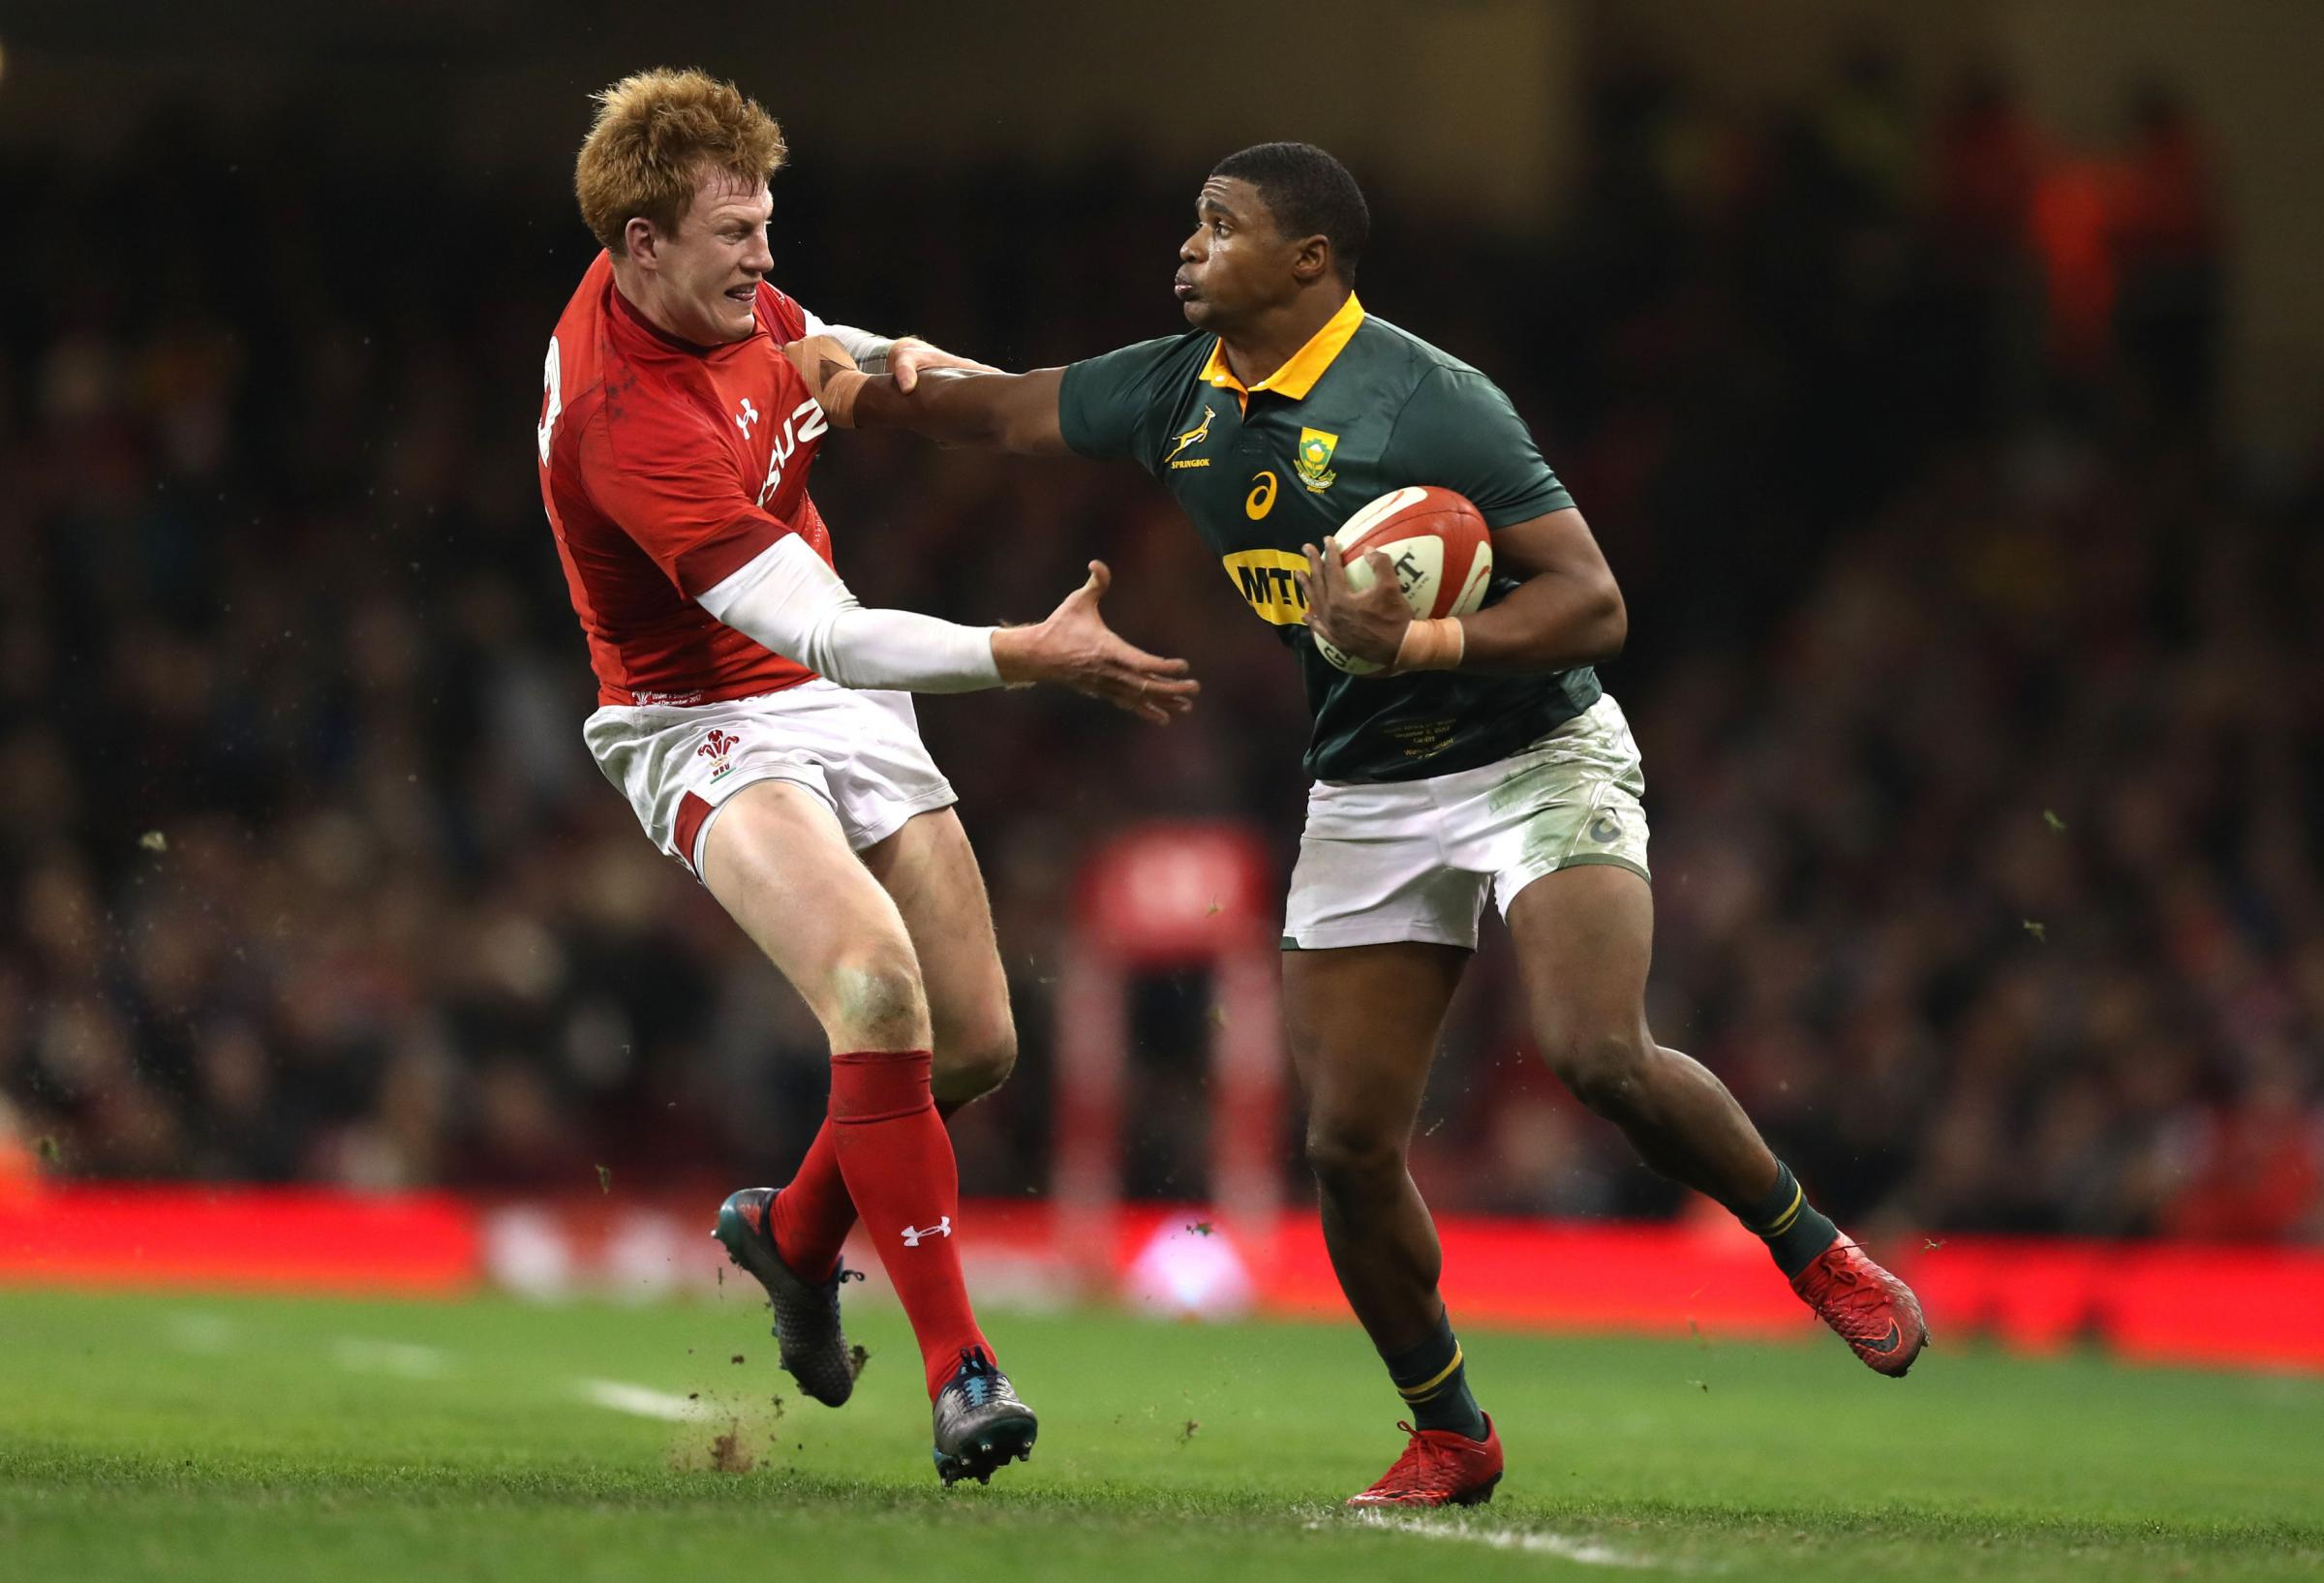 South Africa's Warrick Gelant (right) hands off Wales' Rhys Patchell during the Autumn International at the Principality Stadium, Cardiff. PRESS ASSOCIATION Photo. Picture date: Saturday December 2, 2017. See PA story RUGBYU Wales. Photo credit sh